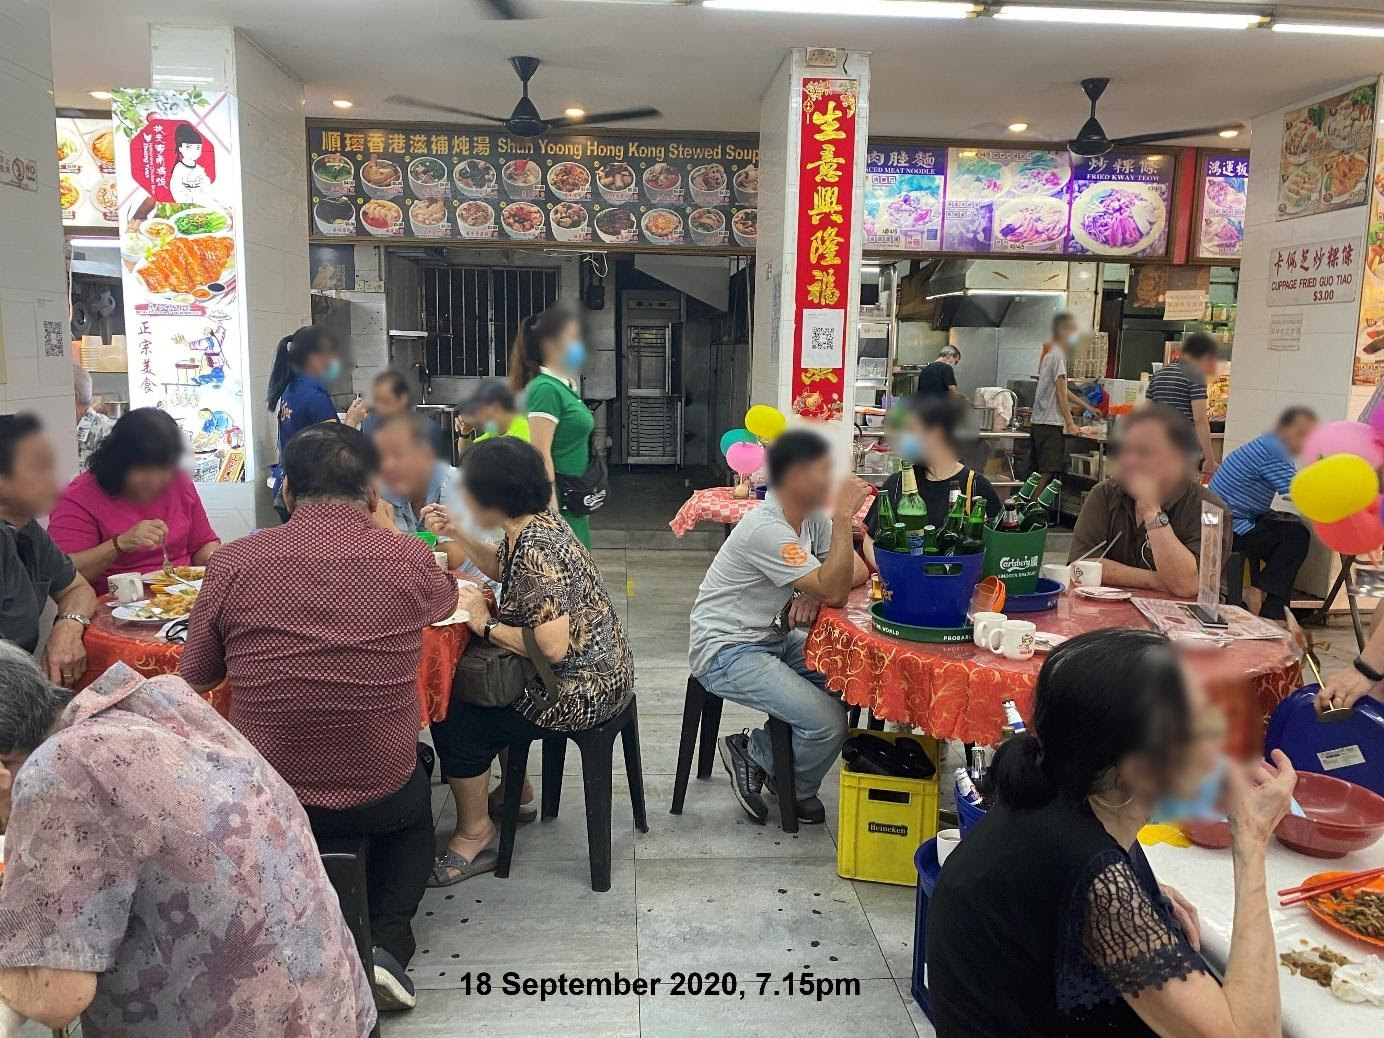 Patrons at two different tables in an F&B outlet in Chinatown were seated less than 1 metre apart. Photo courtesy: Singapore Food Agency